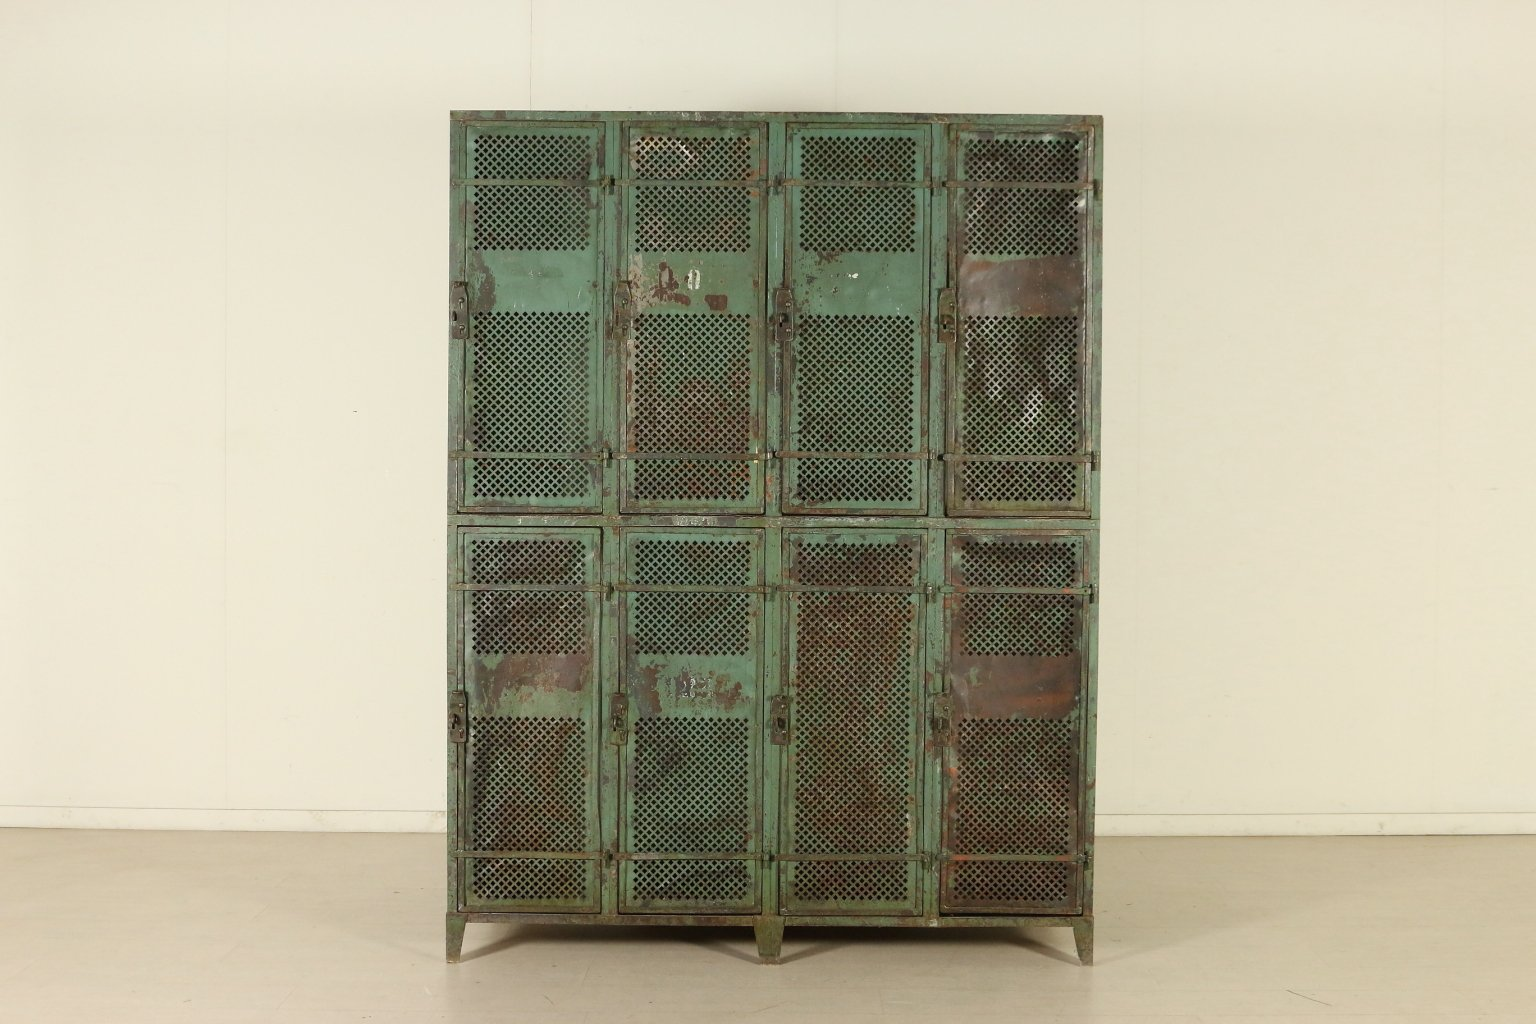 Metal Cabinet From Industrial Vintage Milan 1940s For Sale At Pamono